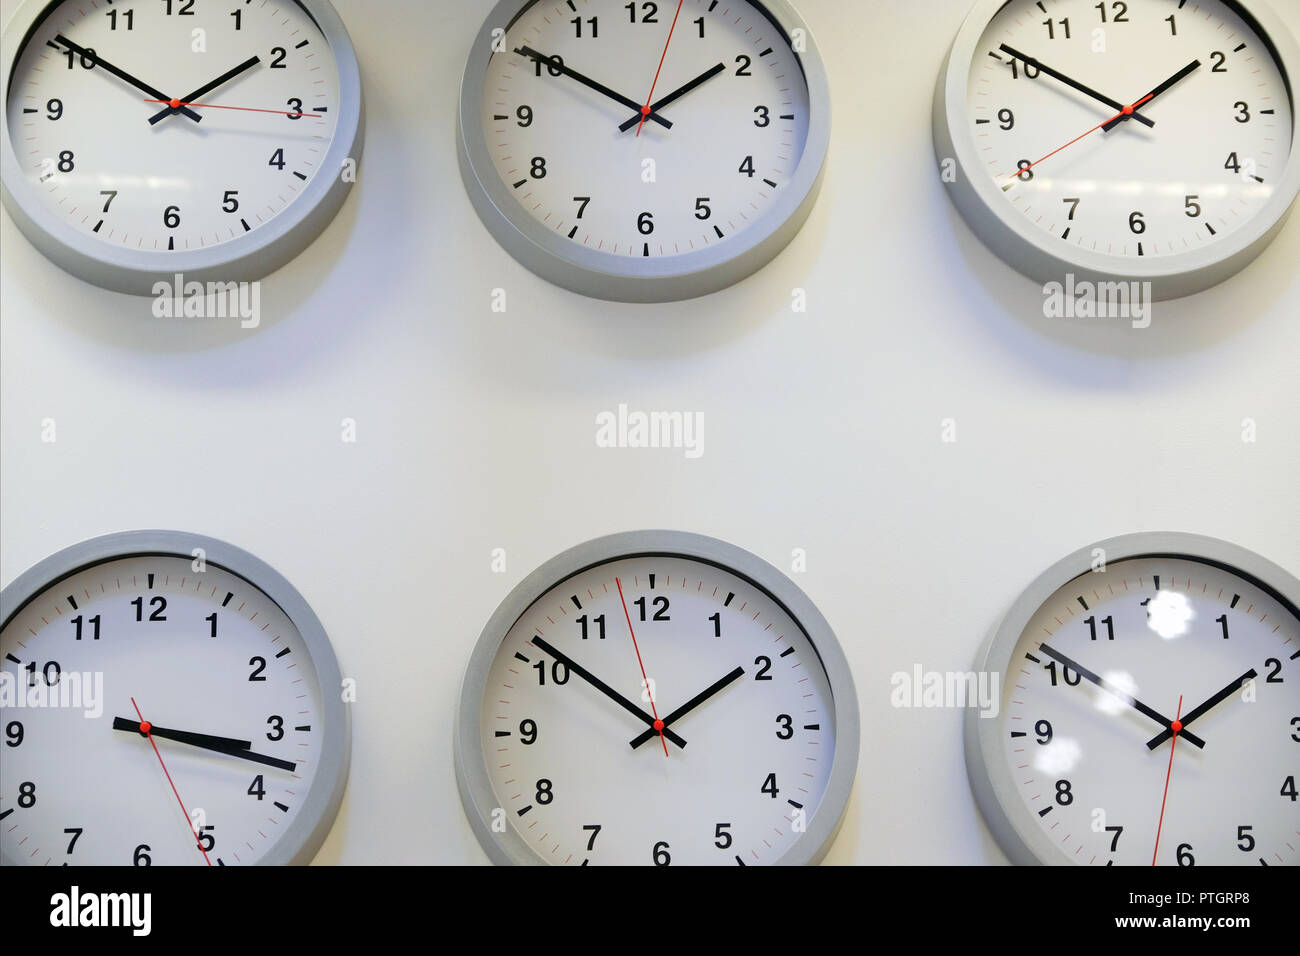 Greenwich Mean Time Stock Photos Amp Greenwich Mean Time